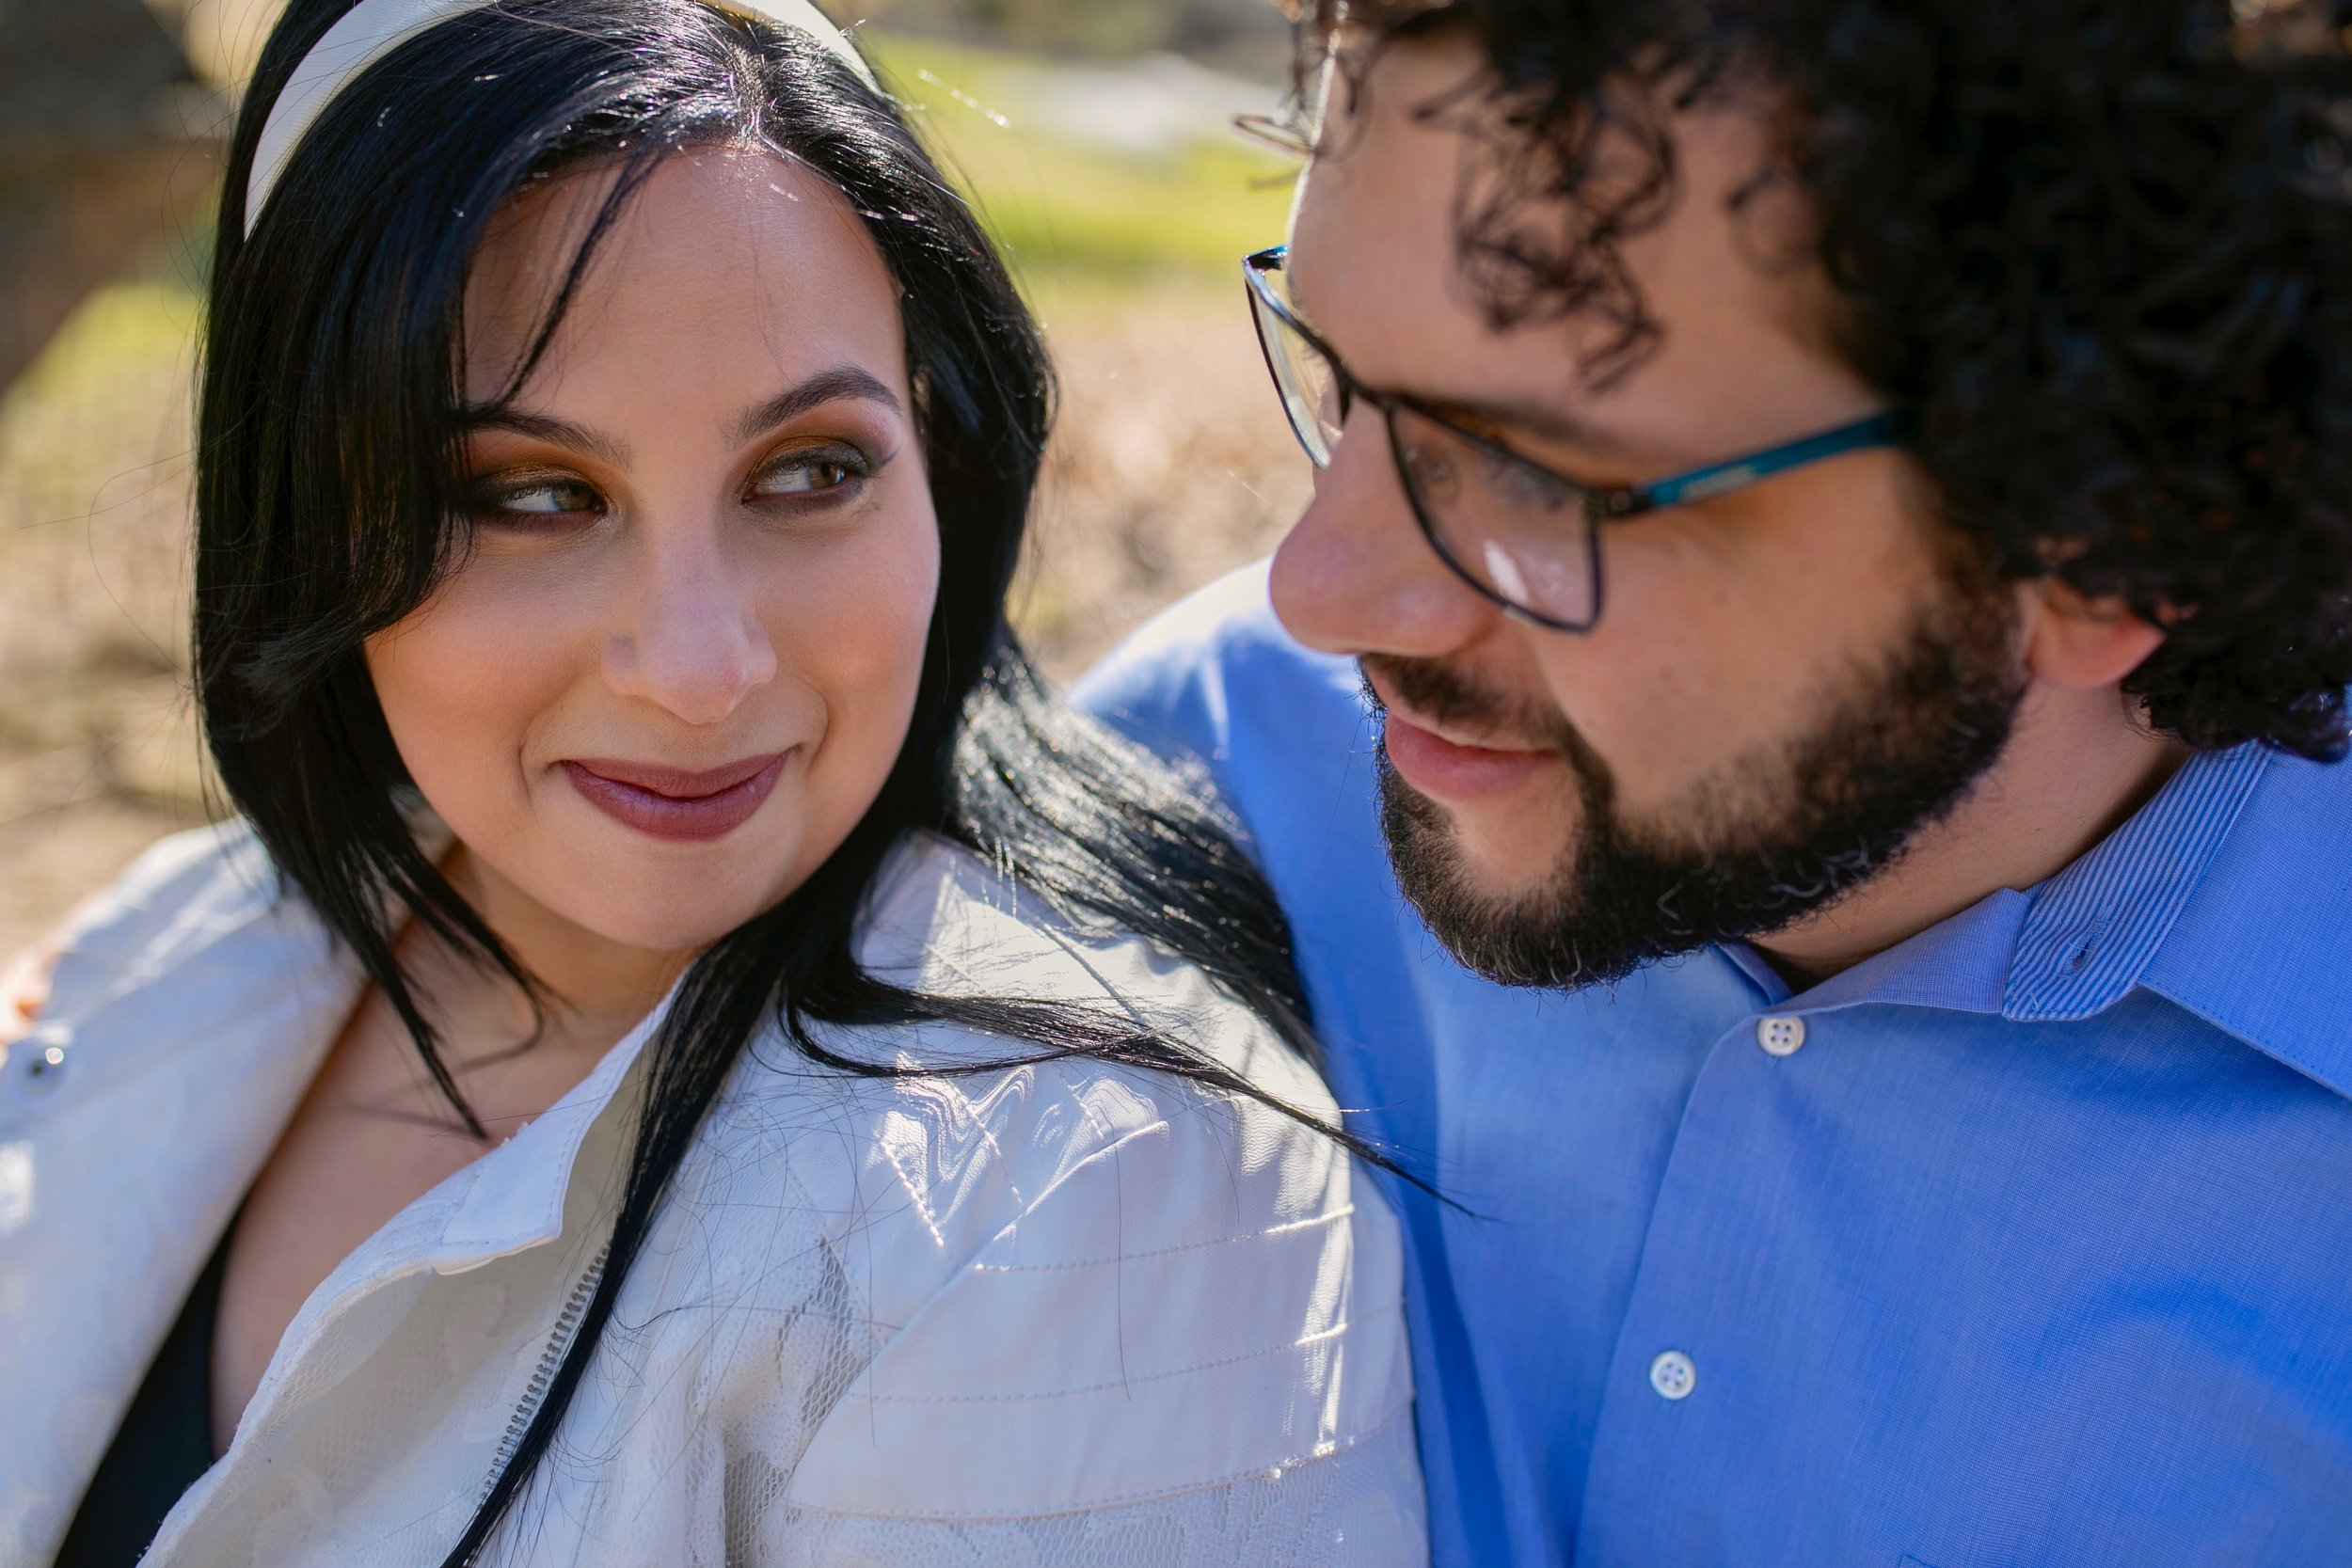 Reezan & Ezequiel Engagement session In New York City by Unveiled-Weddings.com